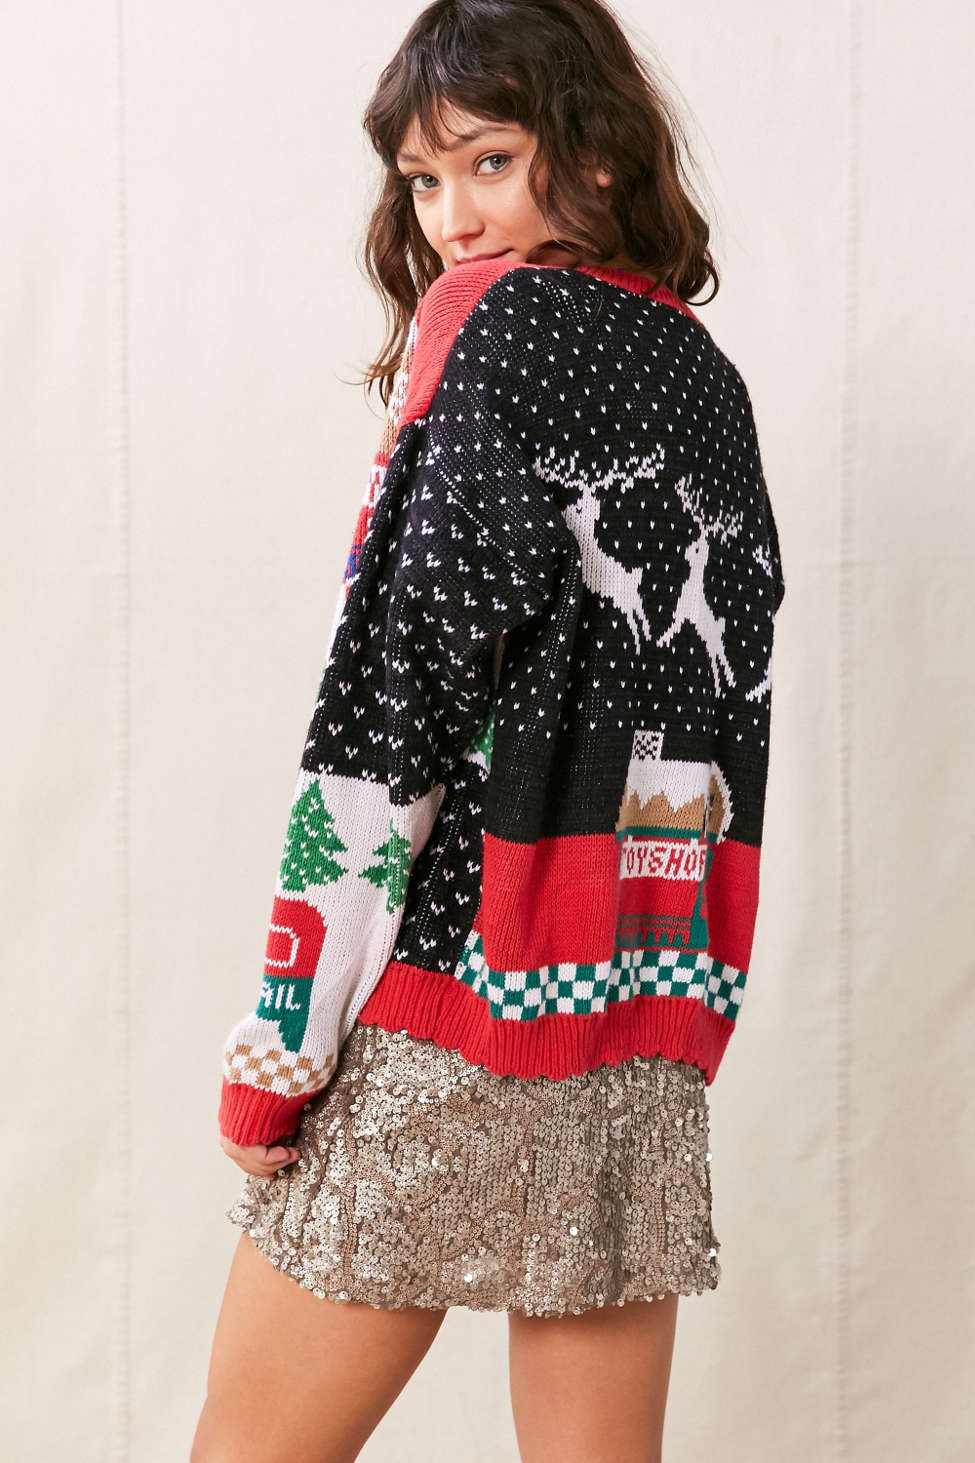 http://www.urbanoutfitters.com/urban/catalog/productdetail.jsp?id=40796294&color=000&category=MORE_IDEAS